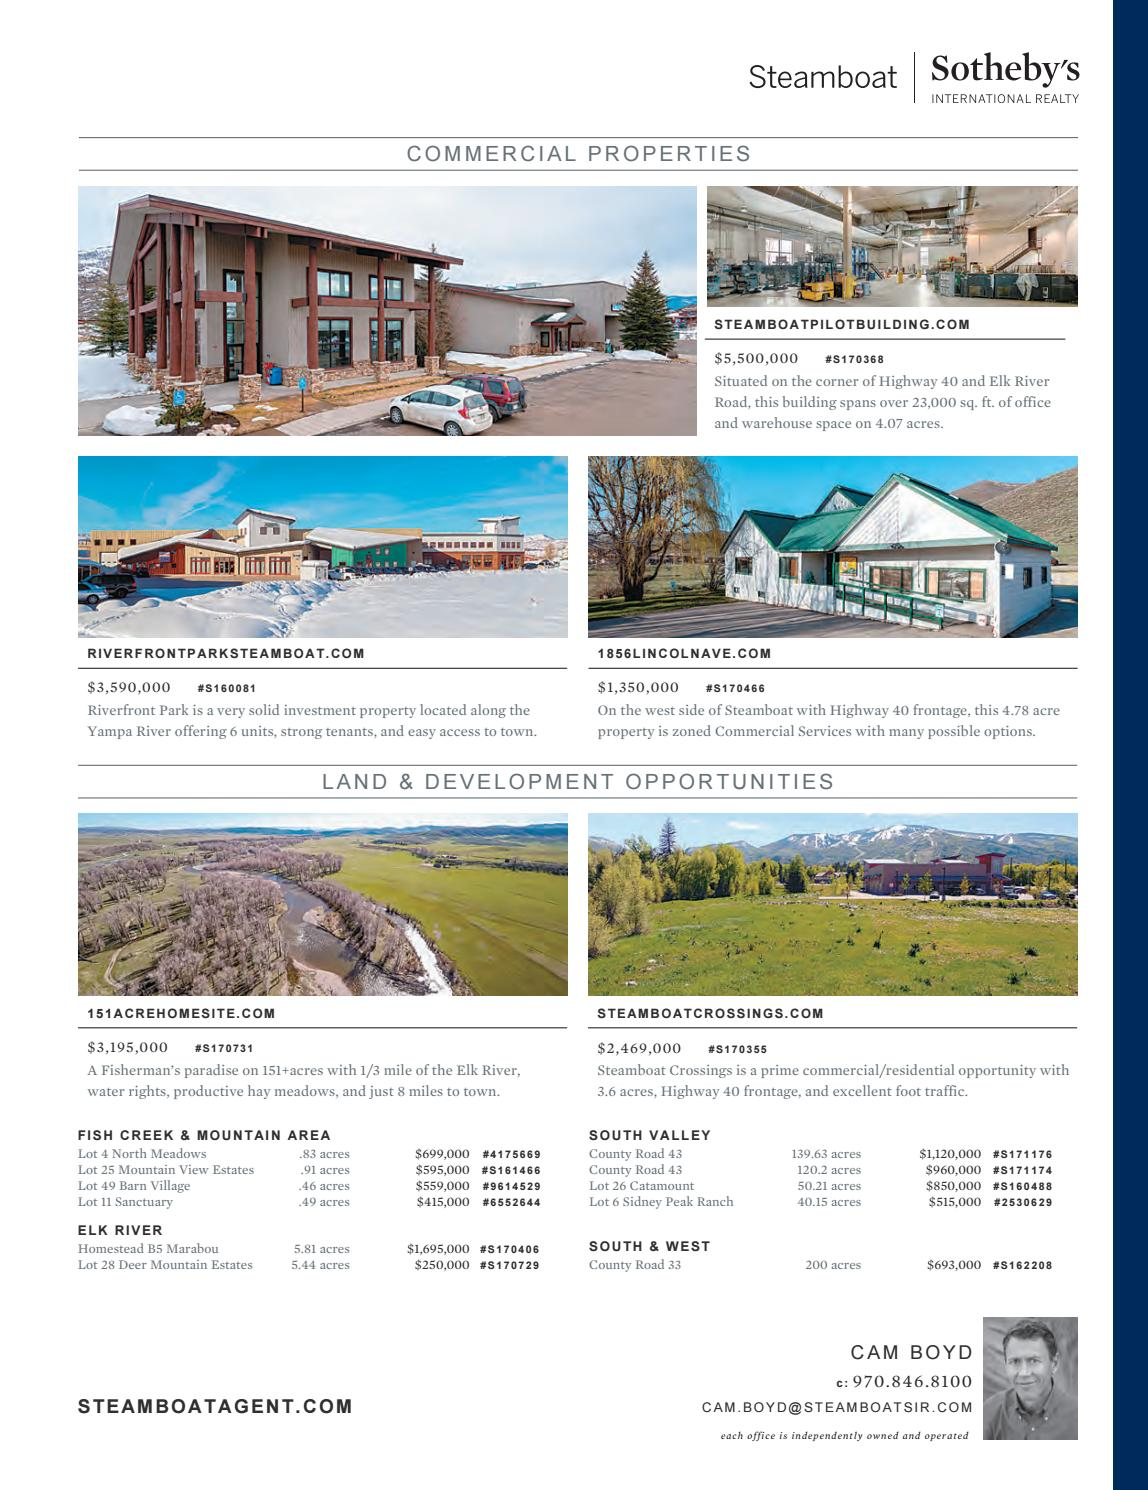 The Collection - Summer 2018 by Steamboat Sotheby's International Realty -  issuu